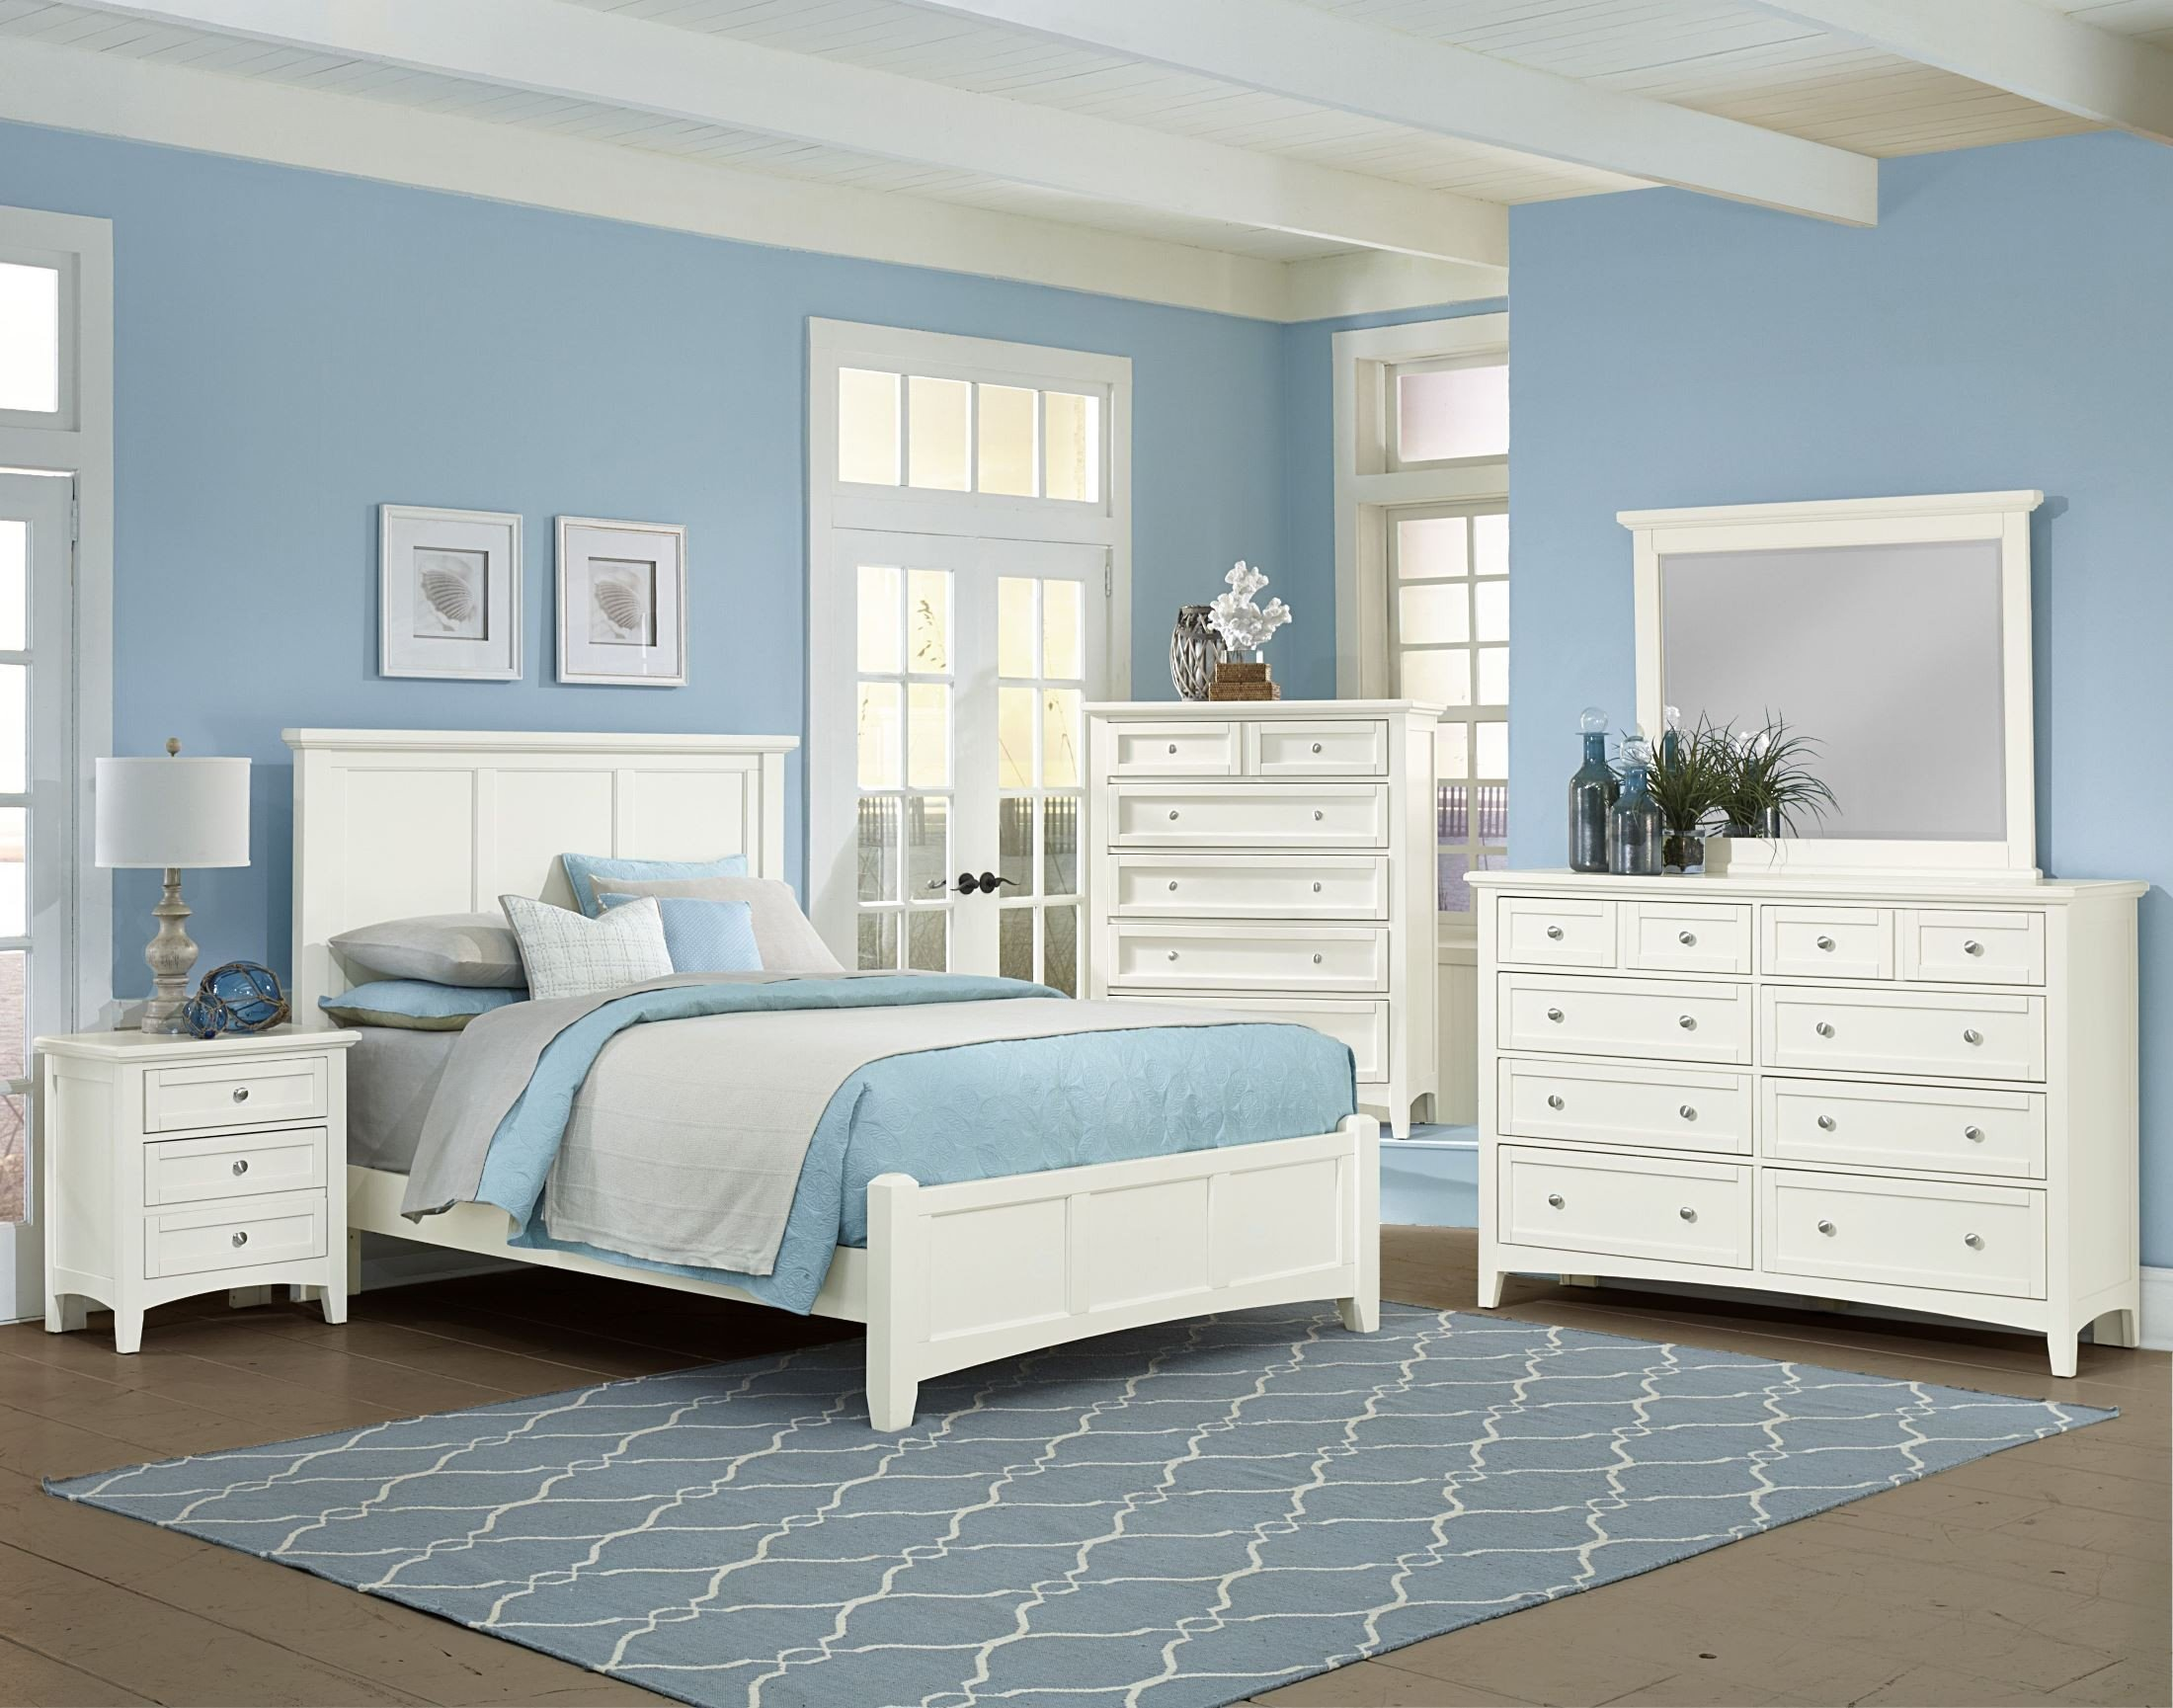 Bonanza white mansion bedroom set 1stopbedrooms - Bedroom furniture sets buy now pay later ...